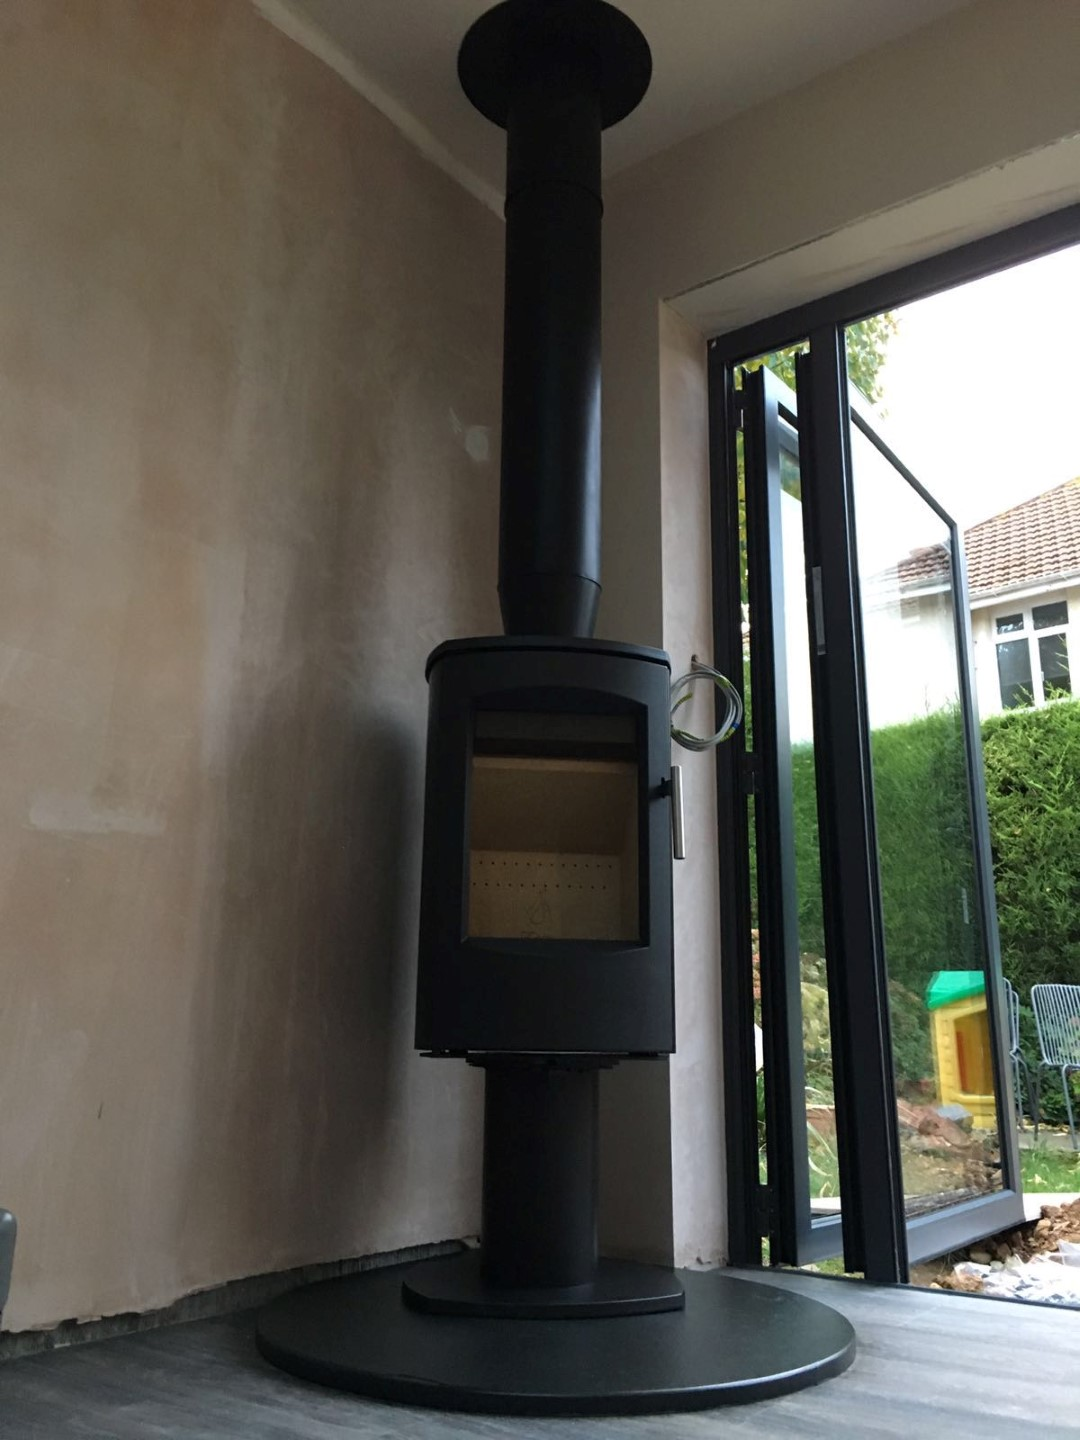 Embers Bristol stove installation in an extension